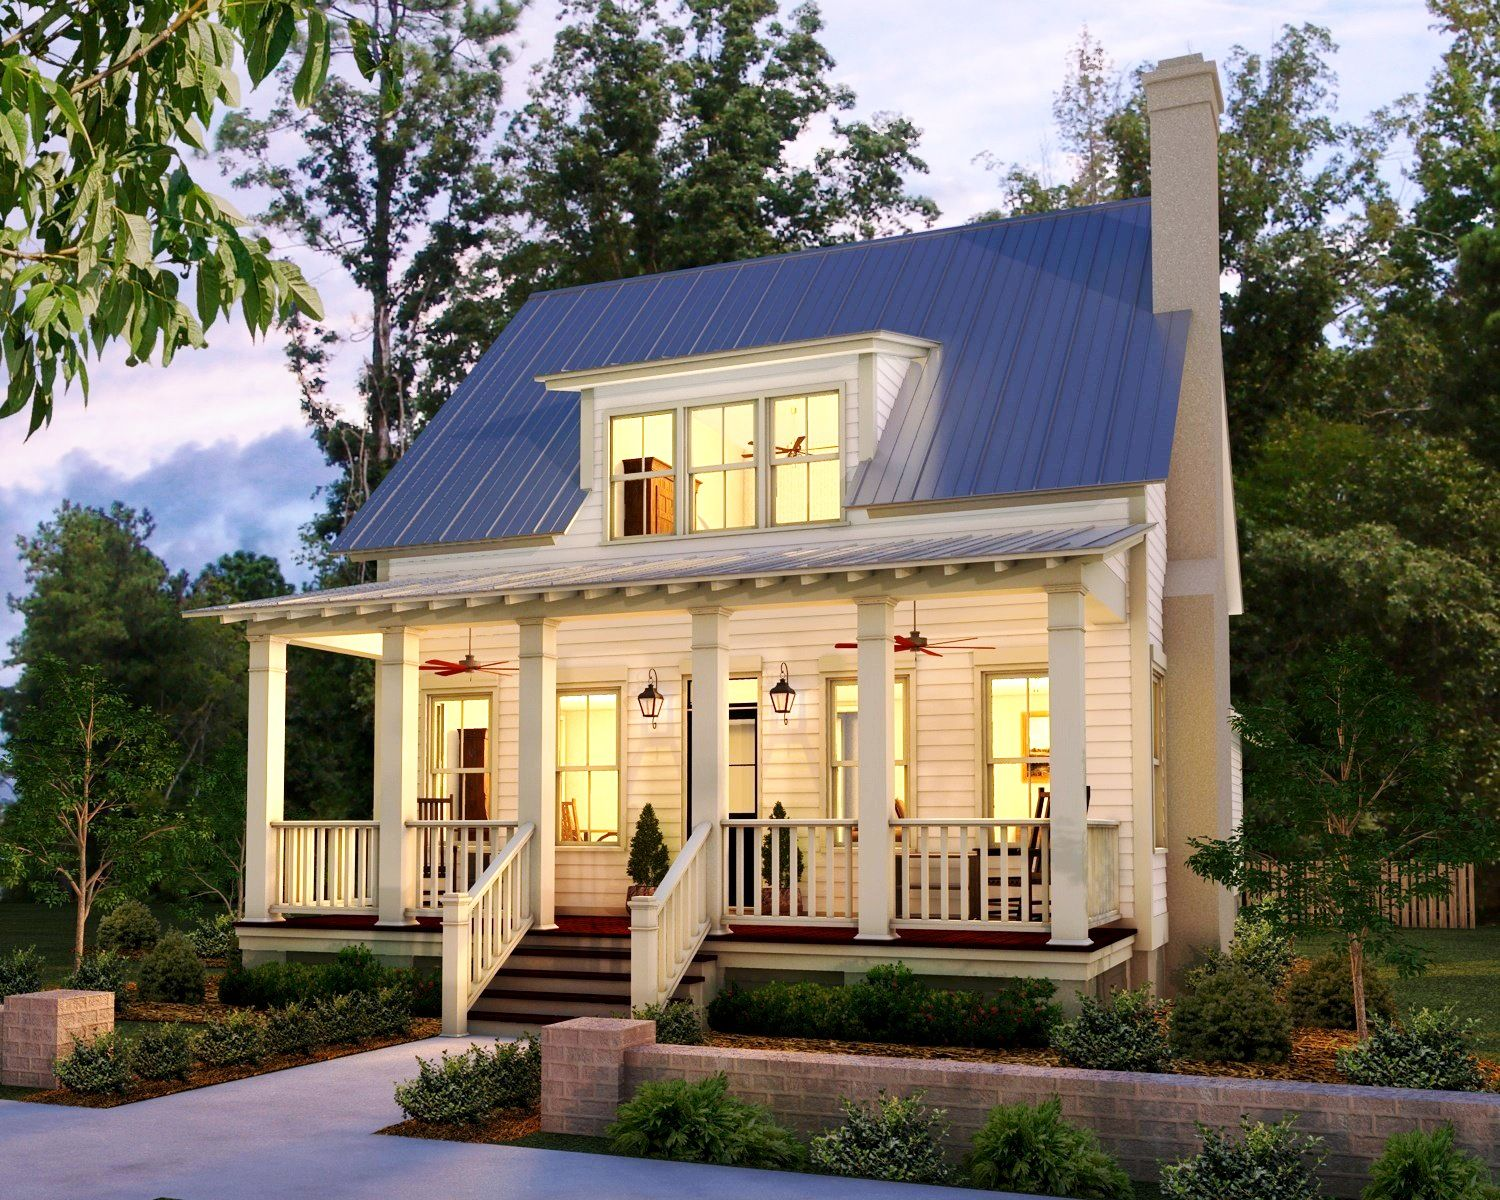 Saluda River Club - Collection of Homes - Columbia, SC @Megan Ruhlman I  found